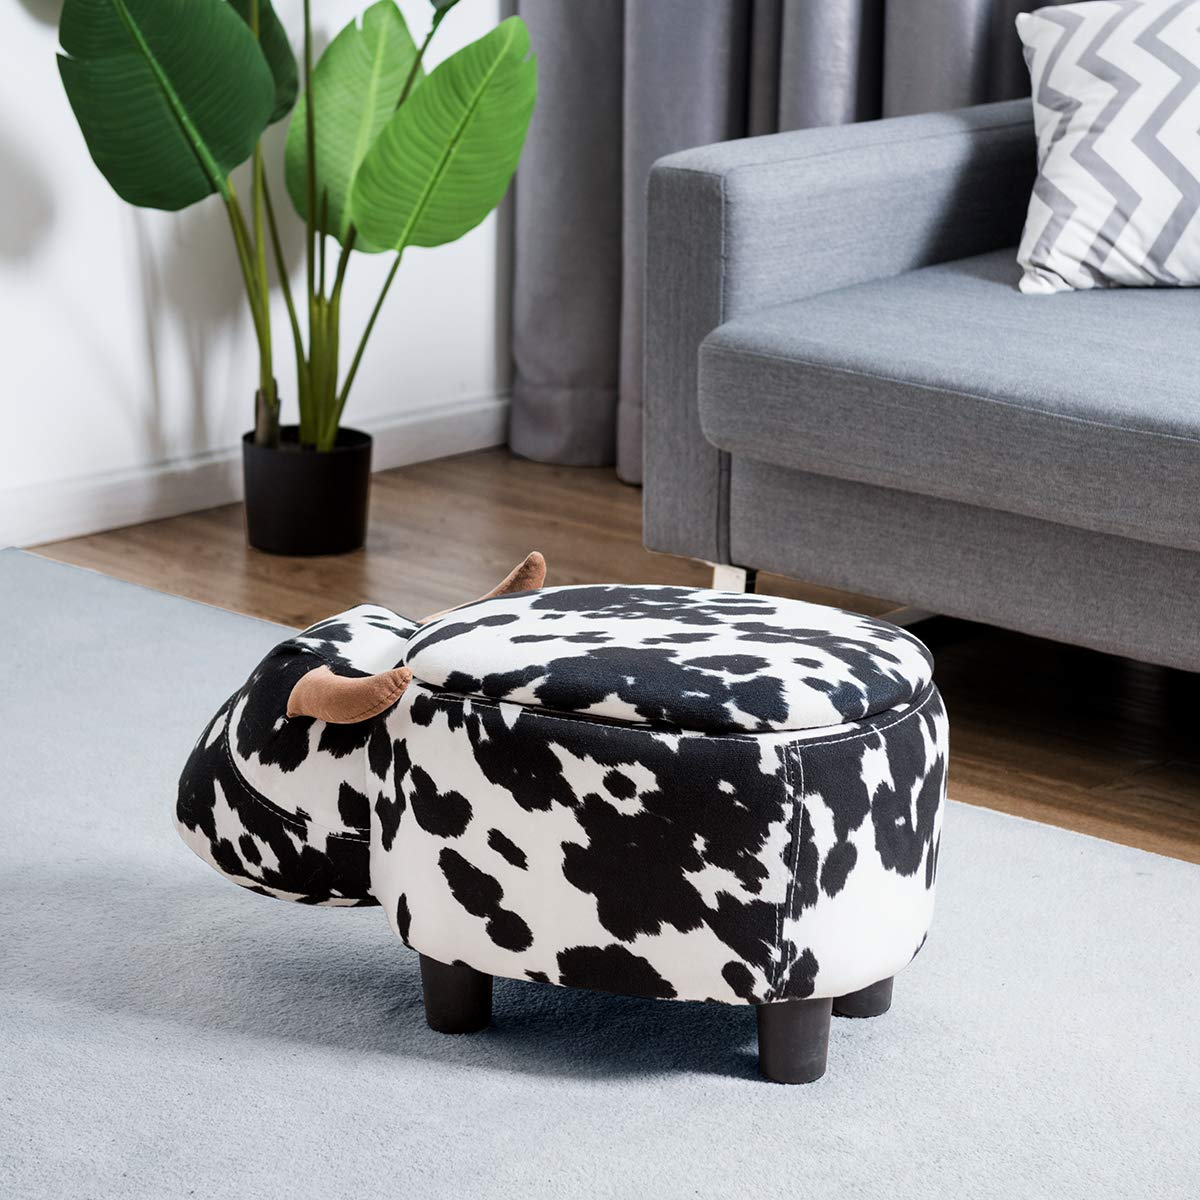 Giantex Ottoman Foot Rest Storage Stool, Foling Padded Seat Cute Animal Buffalo Cow Style Changing Shoes for Bedroom Living Room Entryway Accent Soft Upholstered Ride-on Ottomans White Black